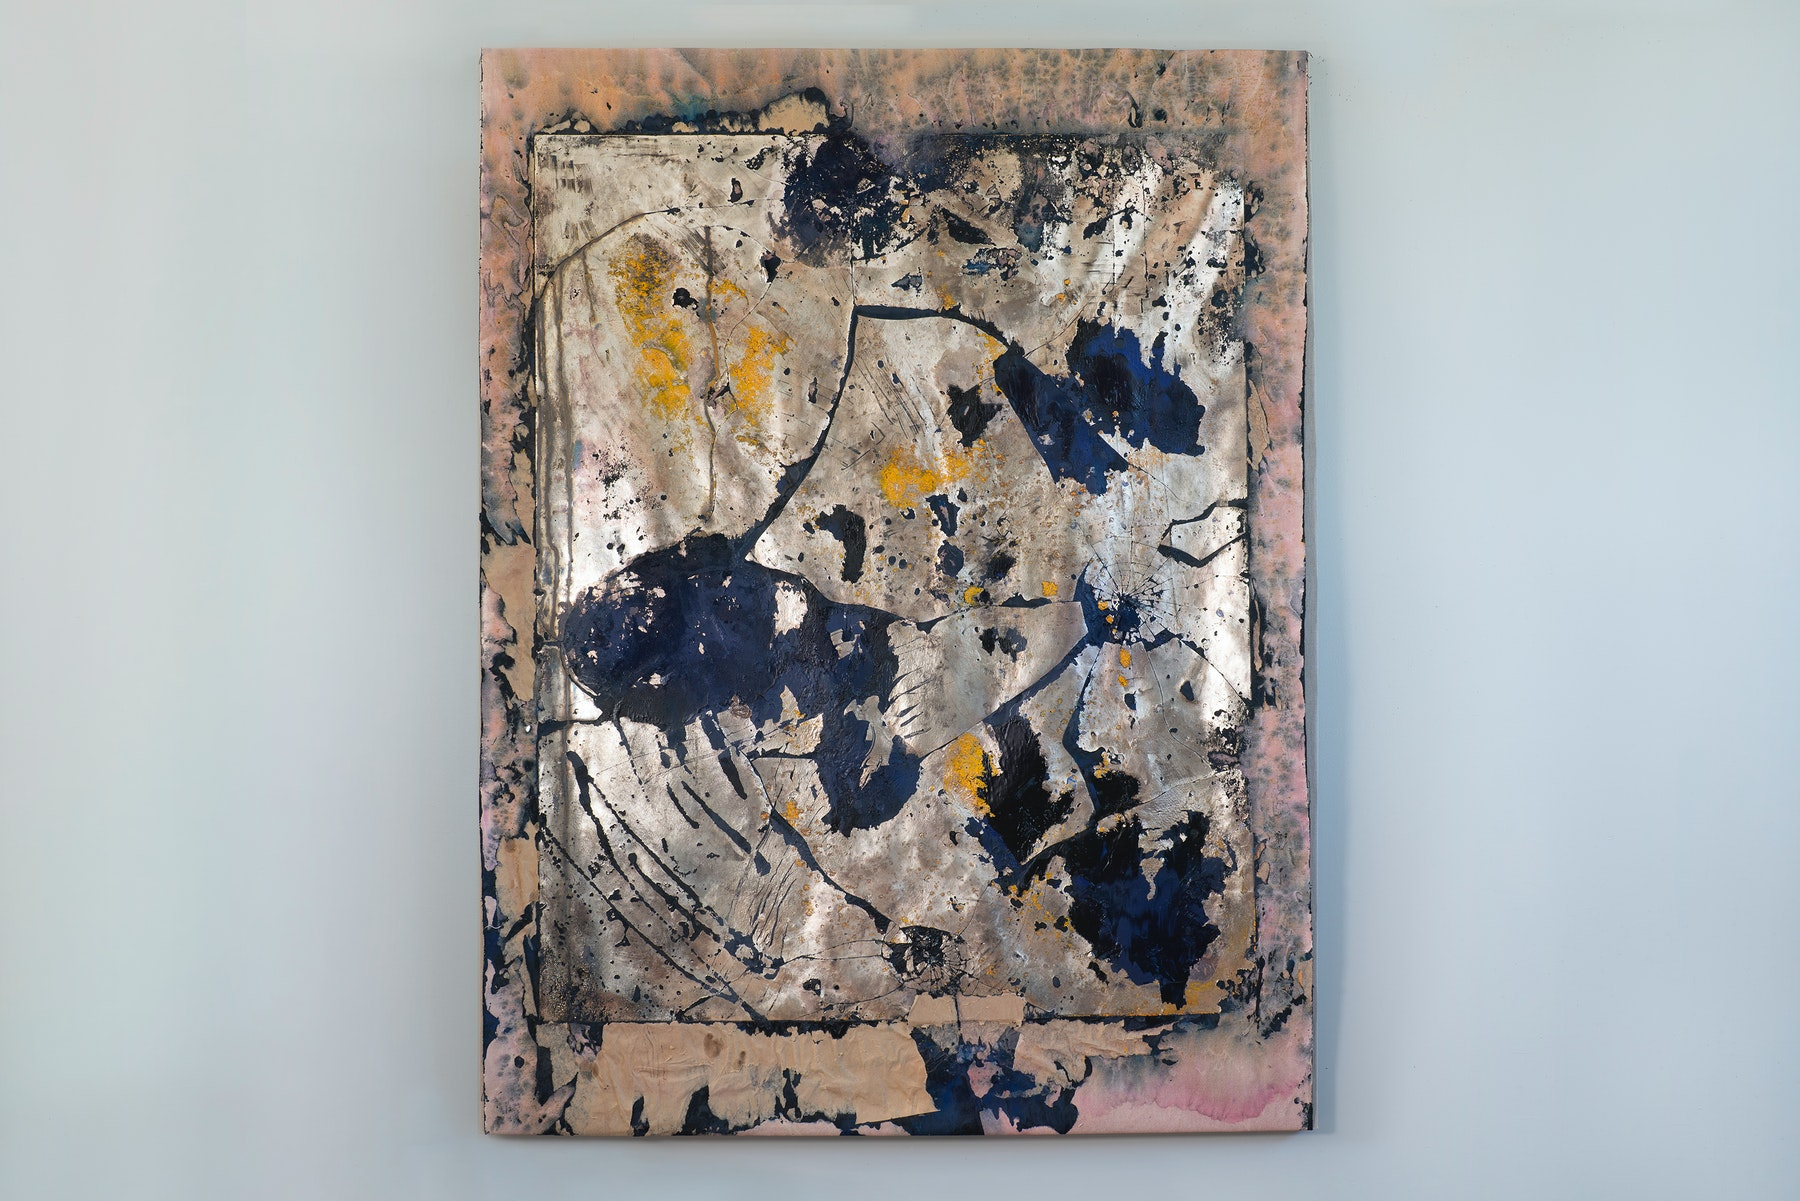 """Edgar Arceneaux """"Skinning the Mirror #12,"""" 2021 Silver nitrate, acrylic paint, paper, and glass on canvas 73 ³⁄₄"""" x 56 ¹⁄₄"""" x 2"""" [HxWxD] (187.32 x 142.87 x 5.08 cm) Inventory #ARC644 Courtesy of the artist and Vielmetter Los Angeles Photo credit: Jeff McLane / Xiaoyue Zhang"""